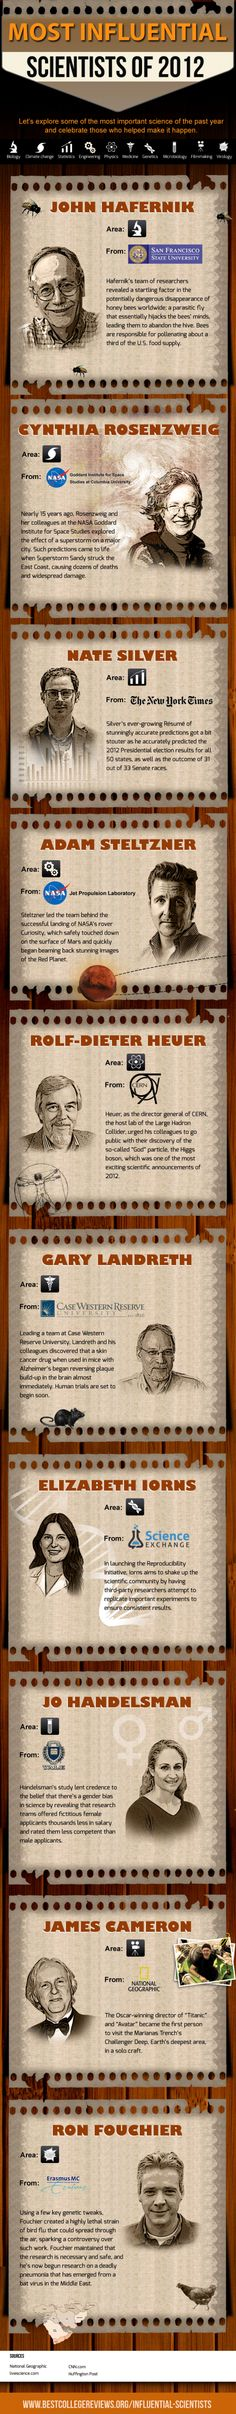 The Most Influential Scientists of 2012   Not all are physicists or cosmologists, of course!